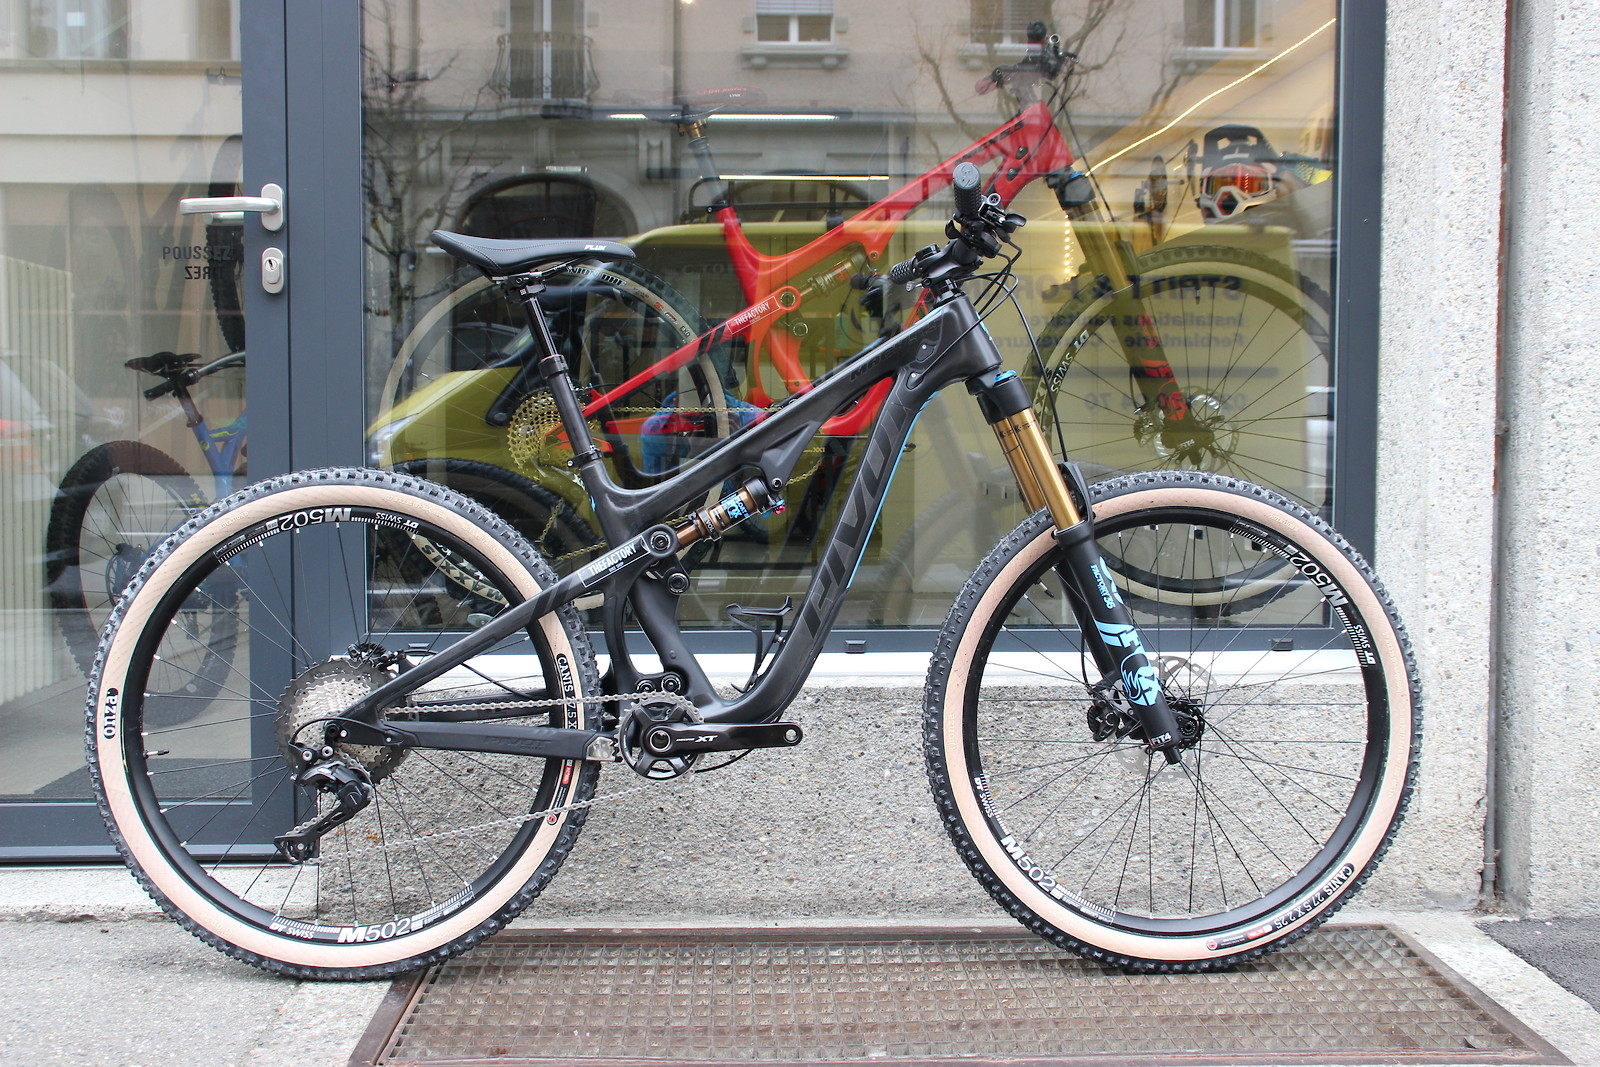 Pivot Mach 5.5 size S - The toy of the princess